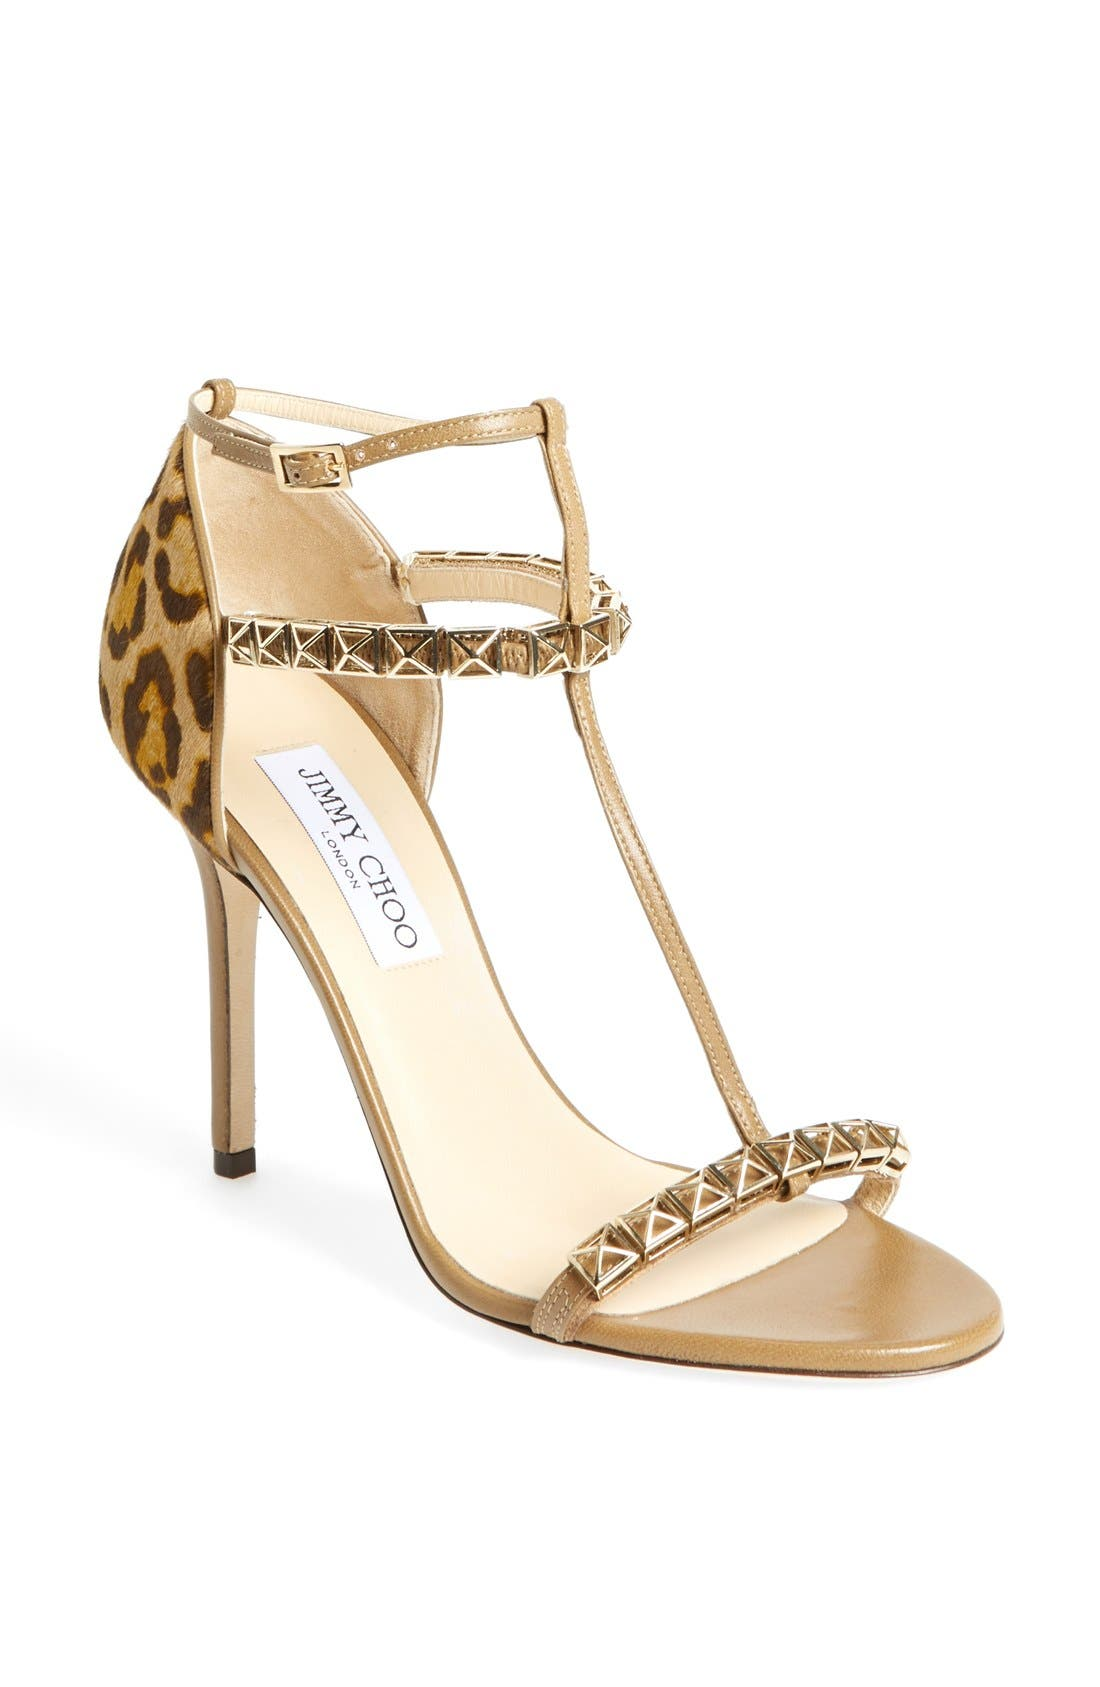 Main Image - Jimmy Choo 'Flint' Studded T-Strap Calf Hair Sandal